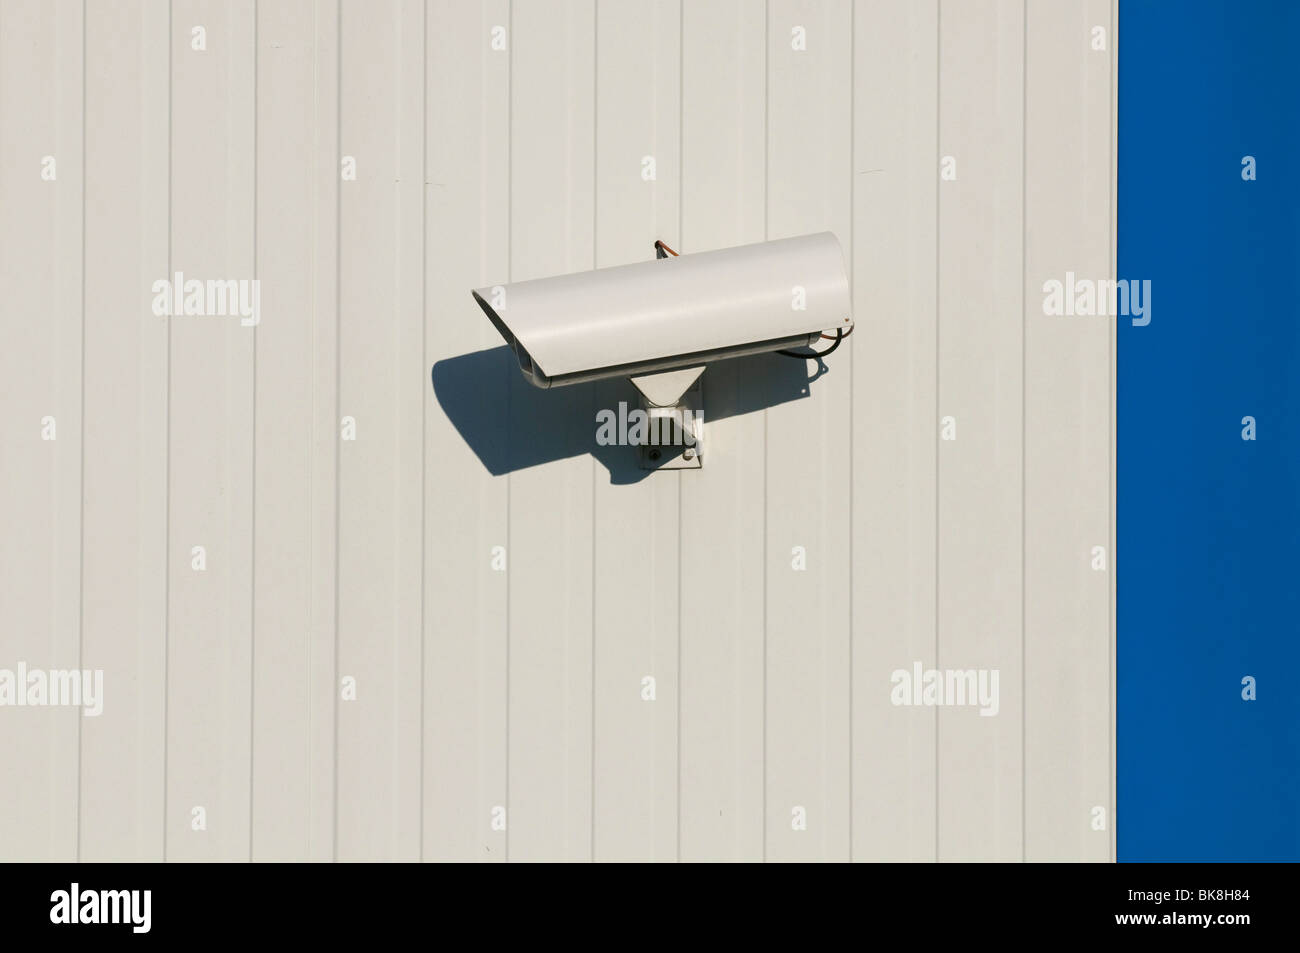 Surveillance camera on hall wall - Stock Image